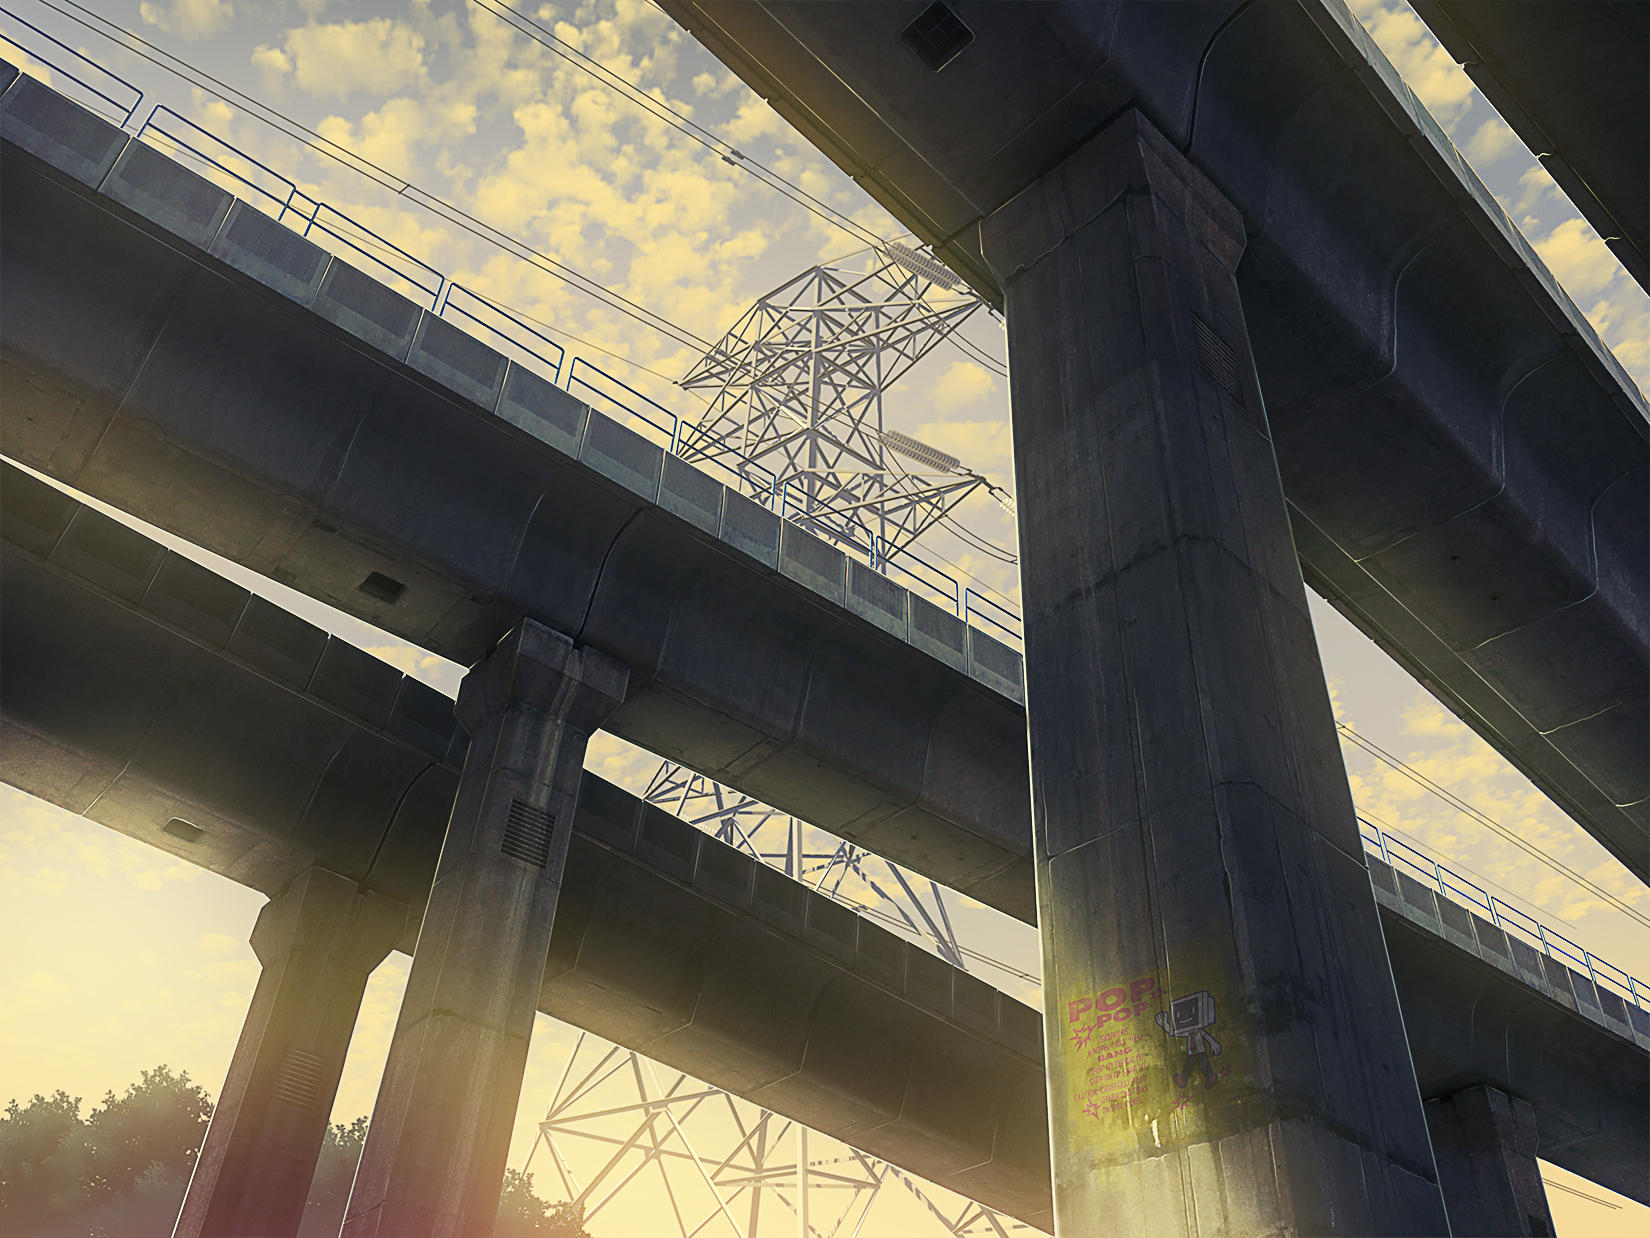 anime evening elevated railway